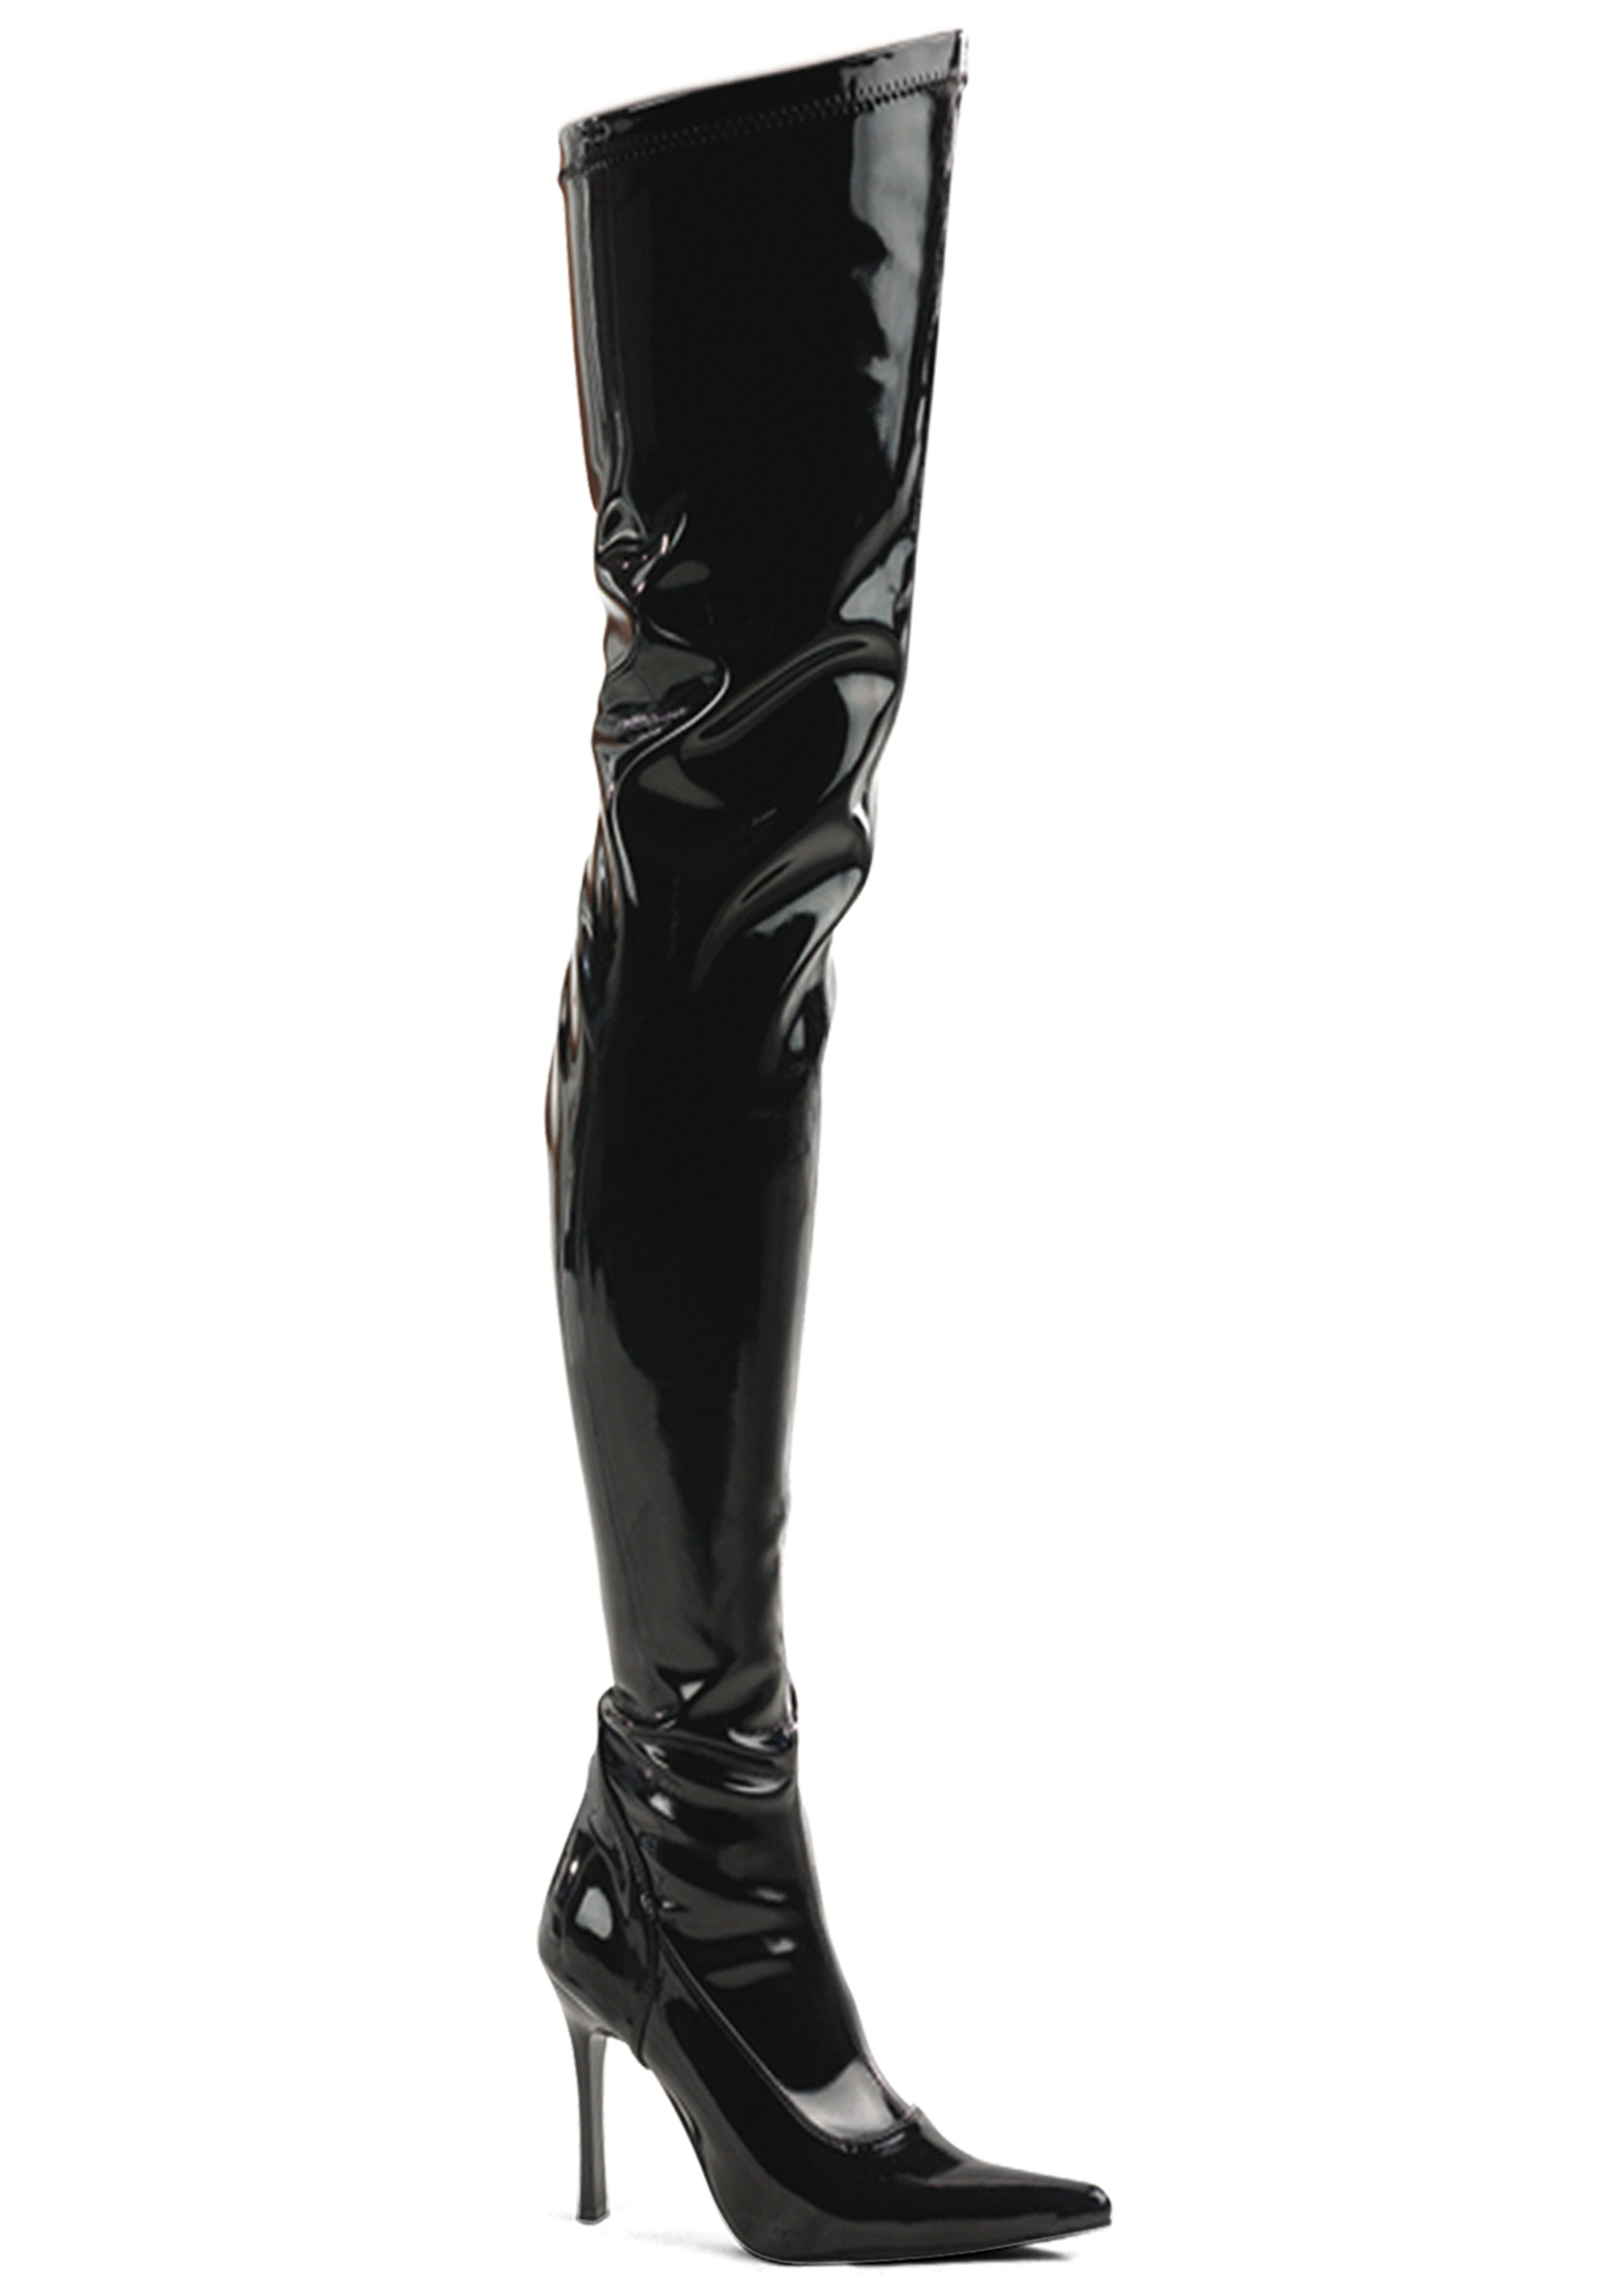 70caa93d53c Black Patent Over the Knee Costume Boot for Women